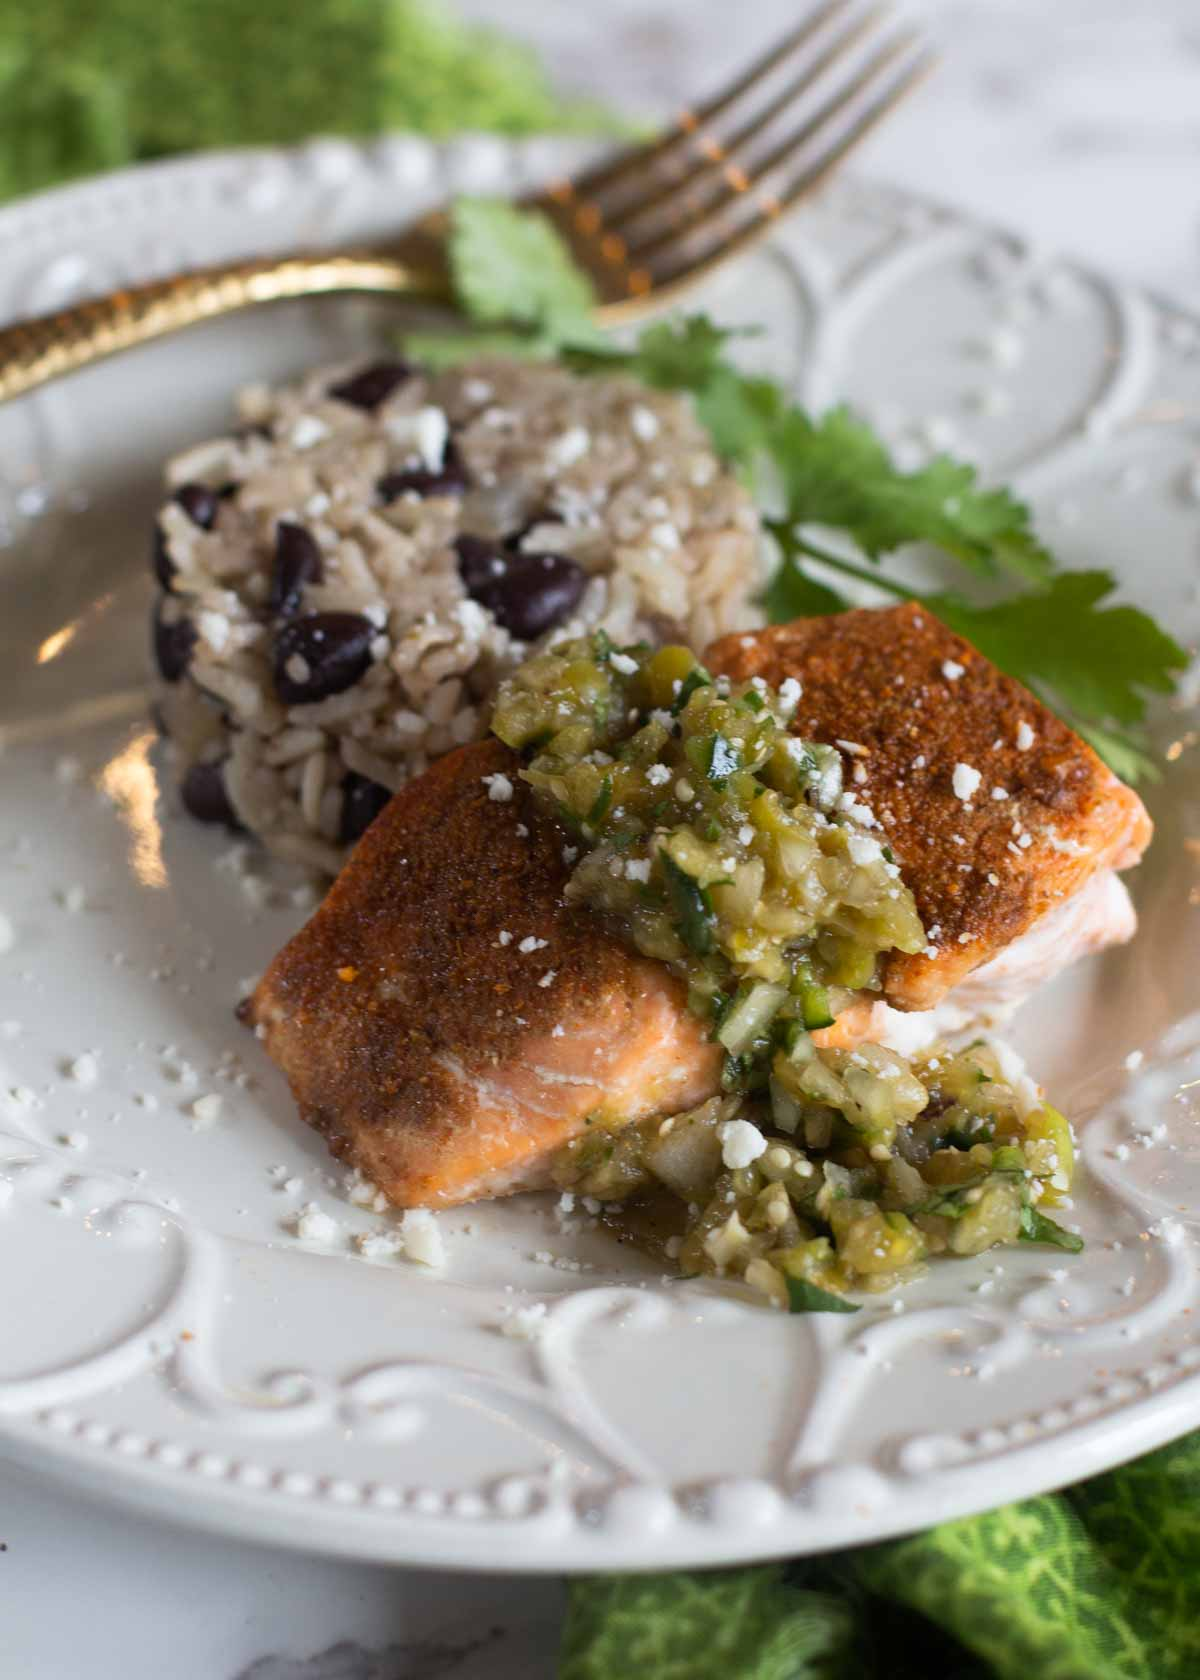 Salmon fillet roasted with Mexican spices and served with black beans and rice.